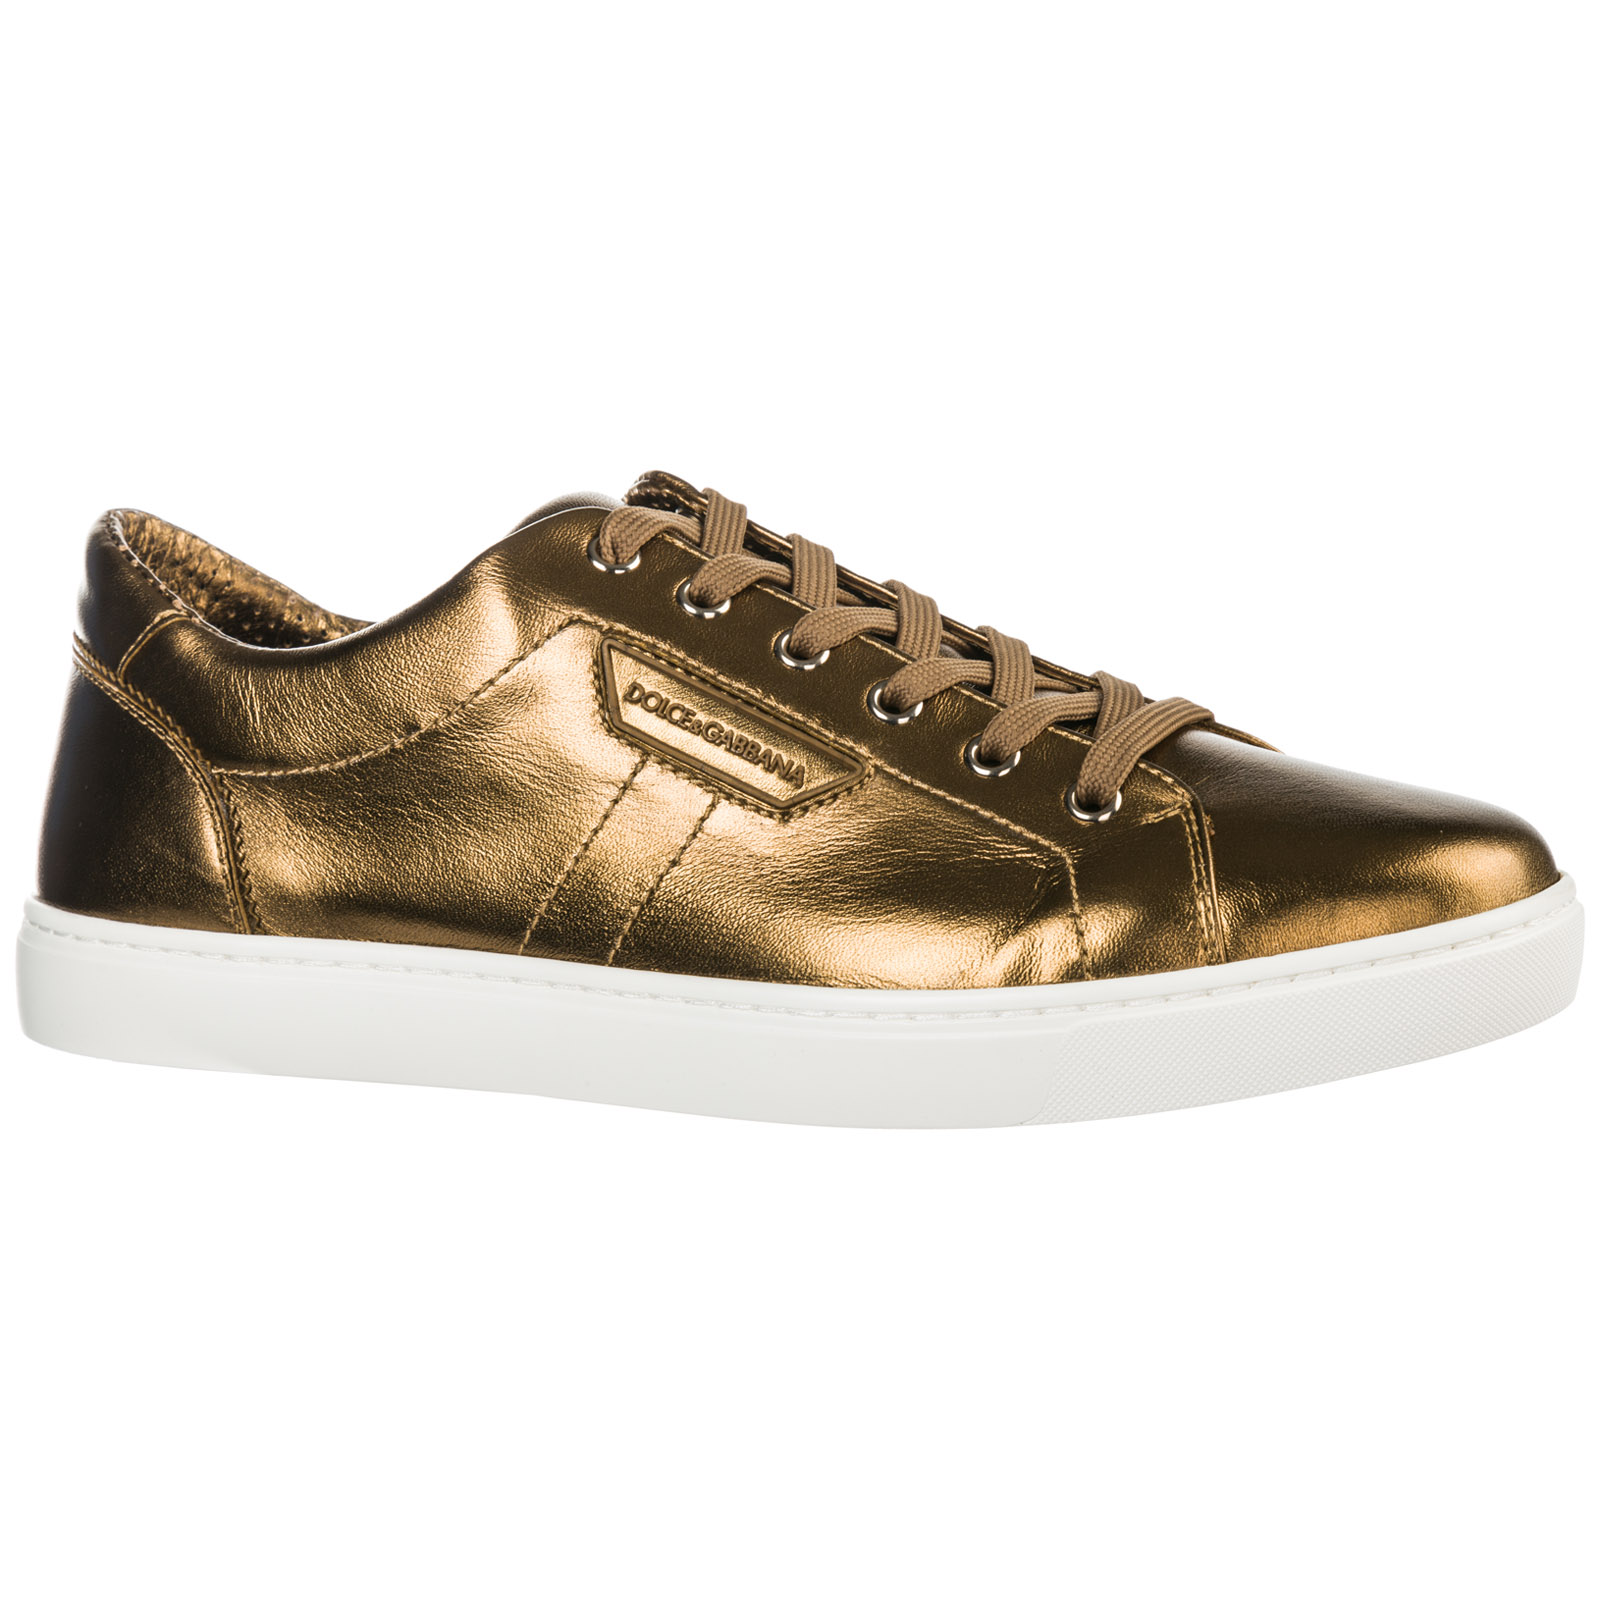 Men's shoes leather trainers sneakers mordorè